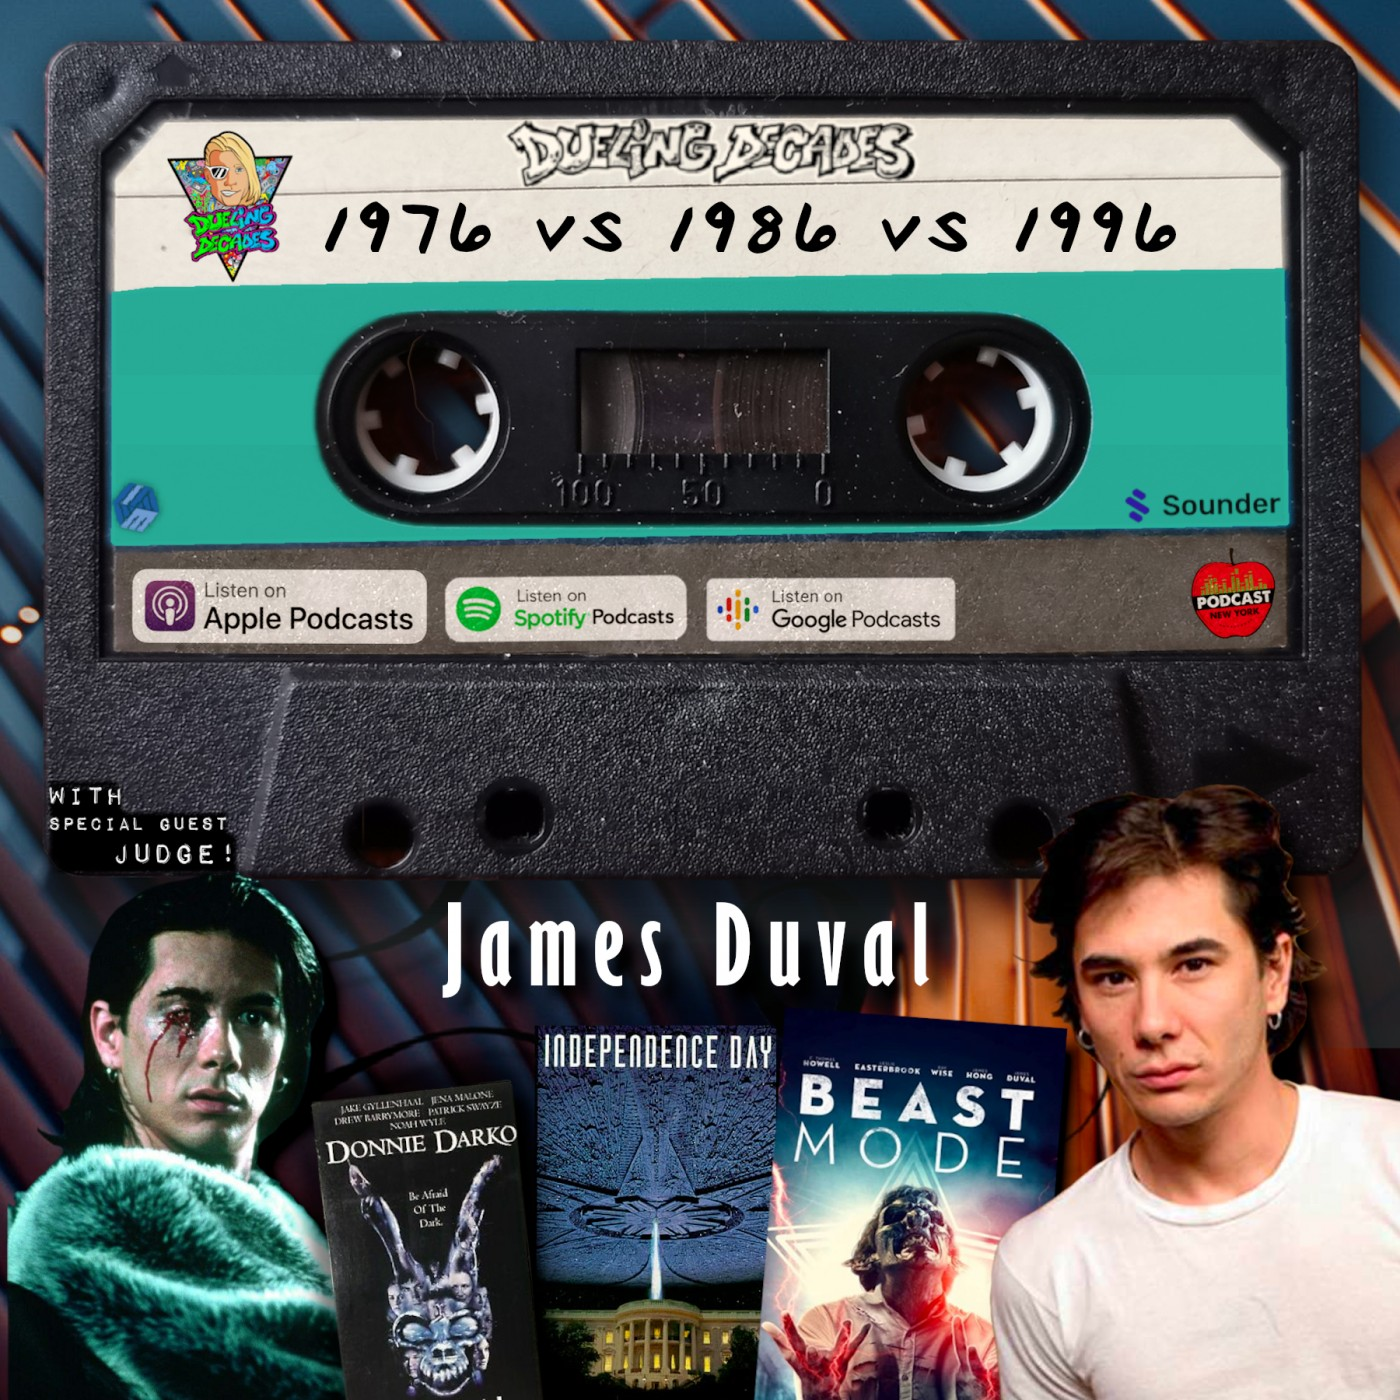 James Duval goes Beast Mode on December 1976, 1986 & 1996 in this retro rumble!